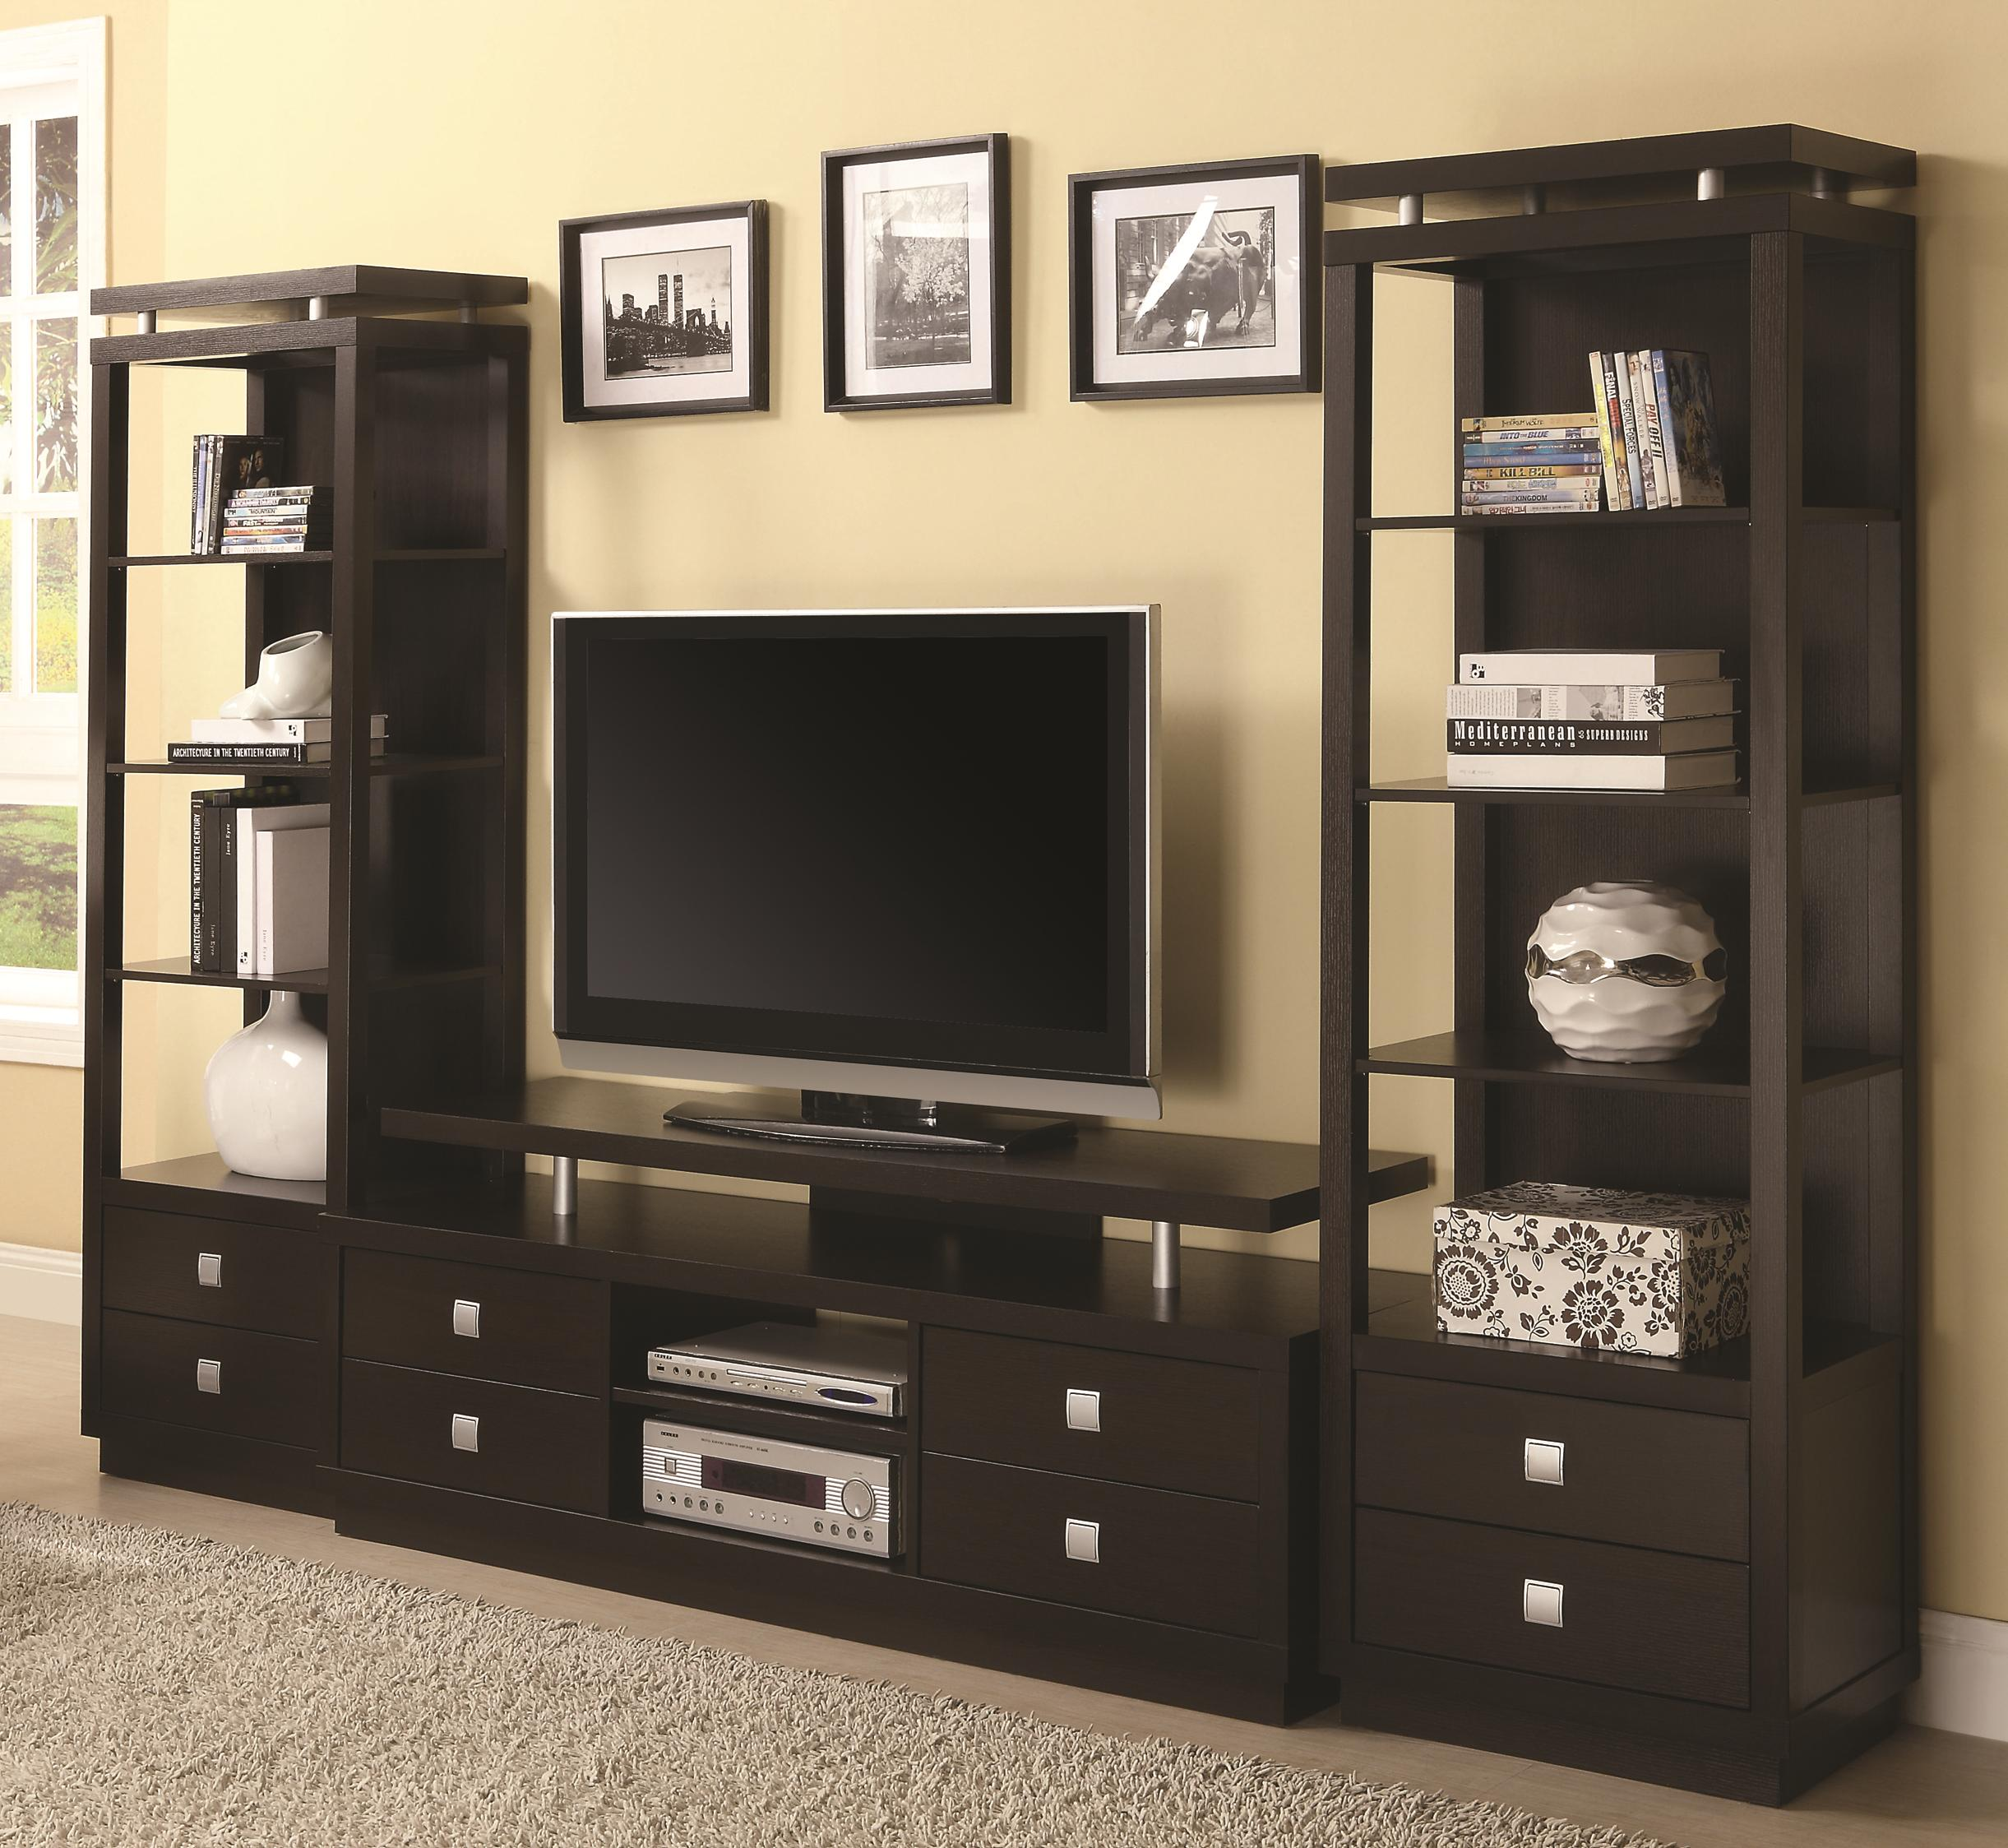 Entertainment Units TV Console & 2 Media Towers by Coaster at Northeast Factory Direct